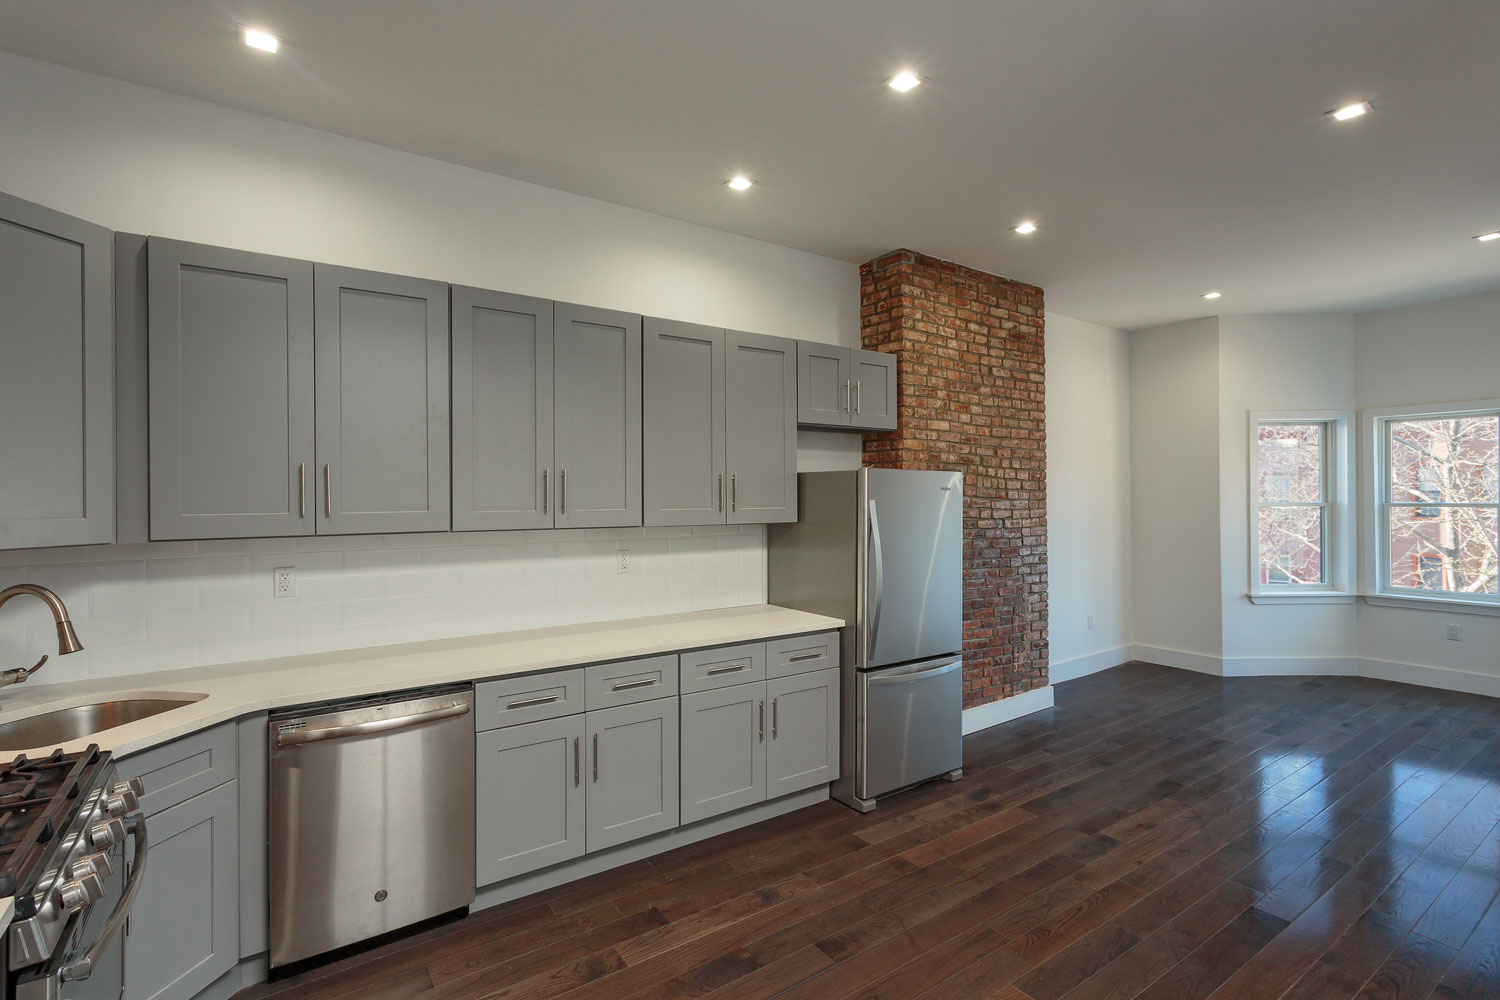 Open kitchen at the Decatur Street townhouse renovation by OCV Architects